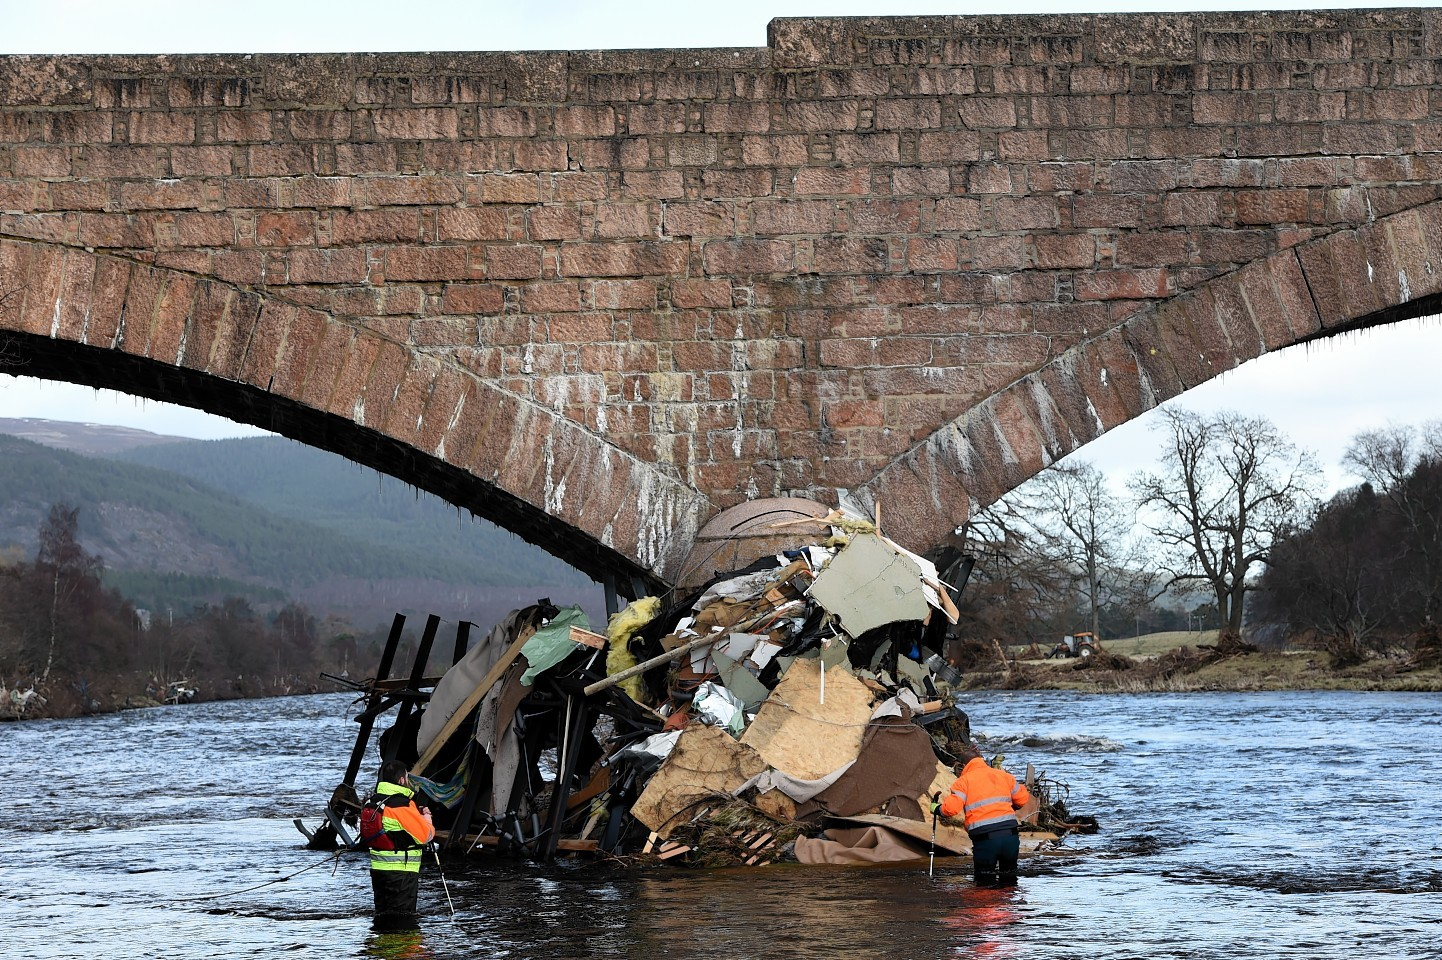 The clean-up of the Ballater Bridge after floods left a huge amount of debris lying under the structure has been delayed for another week due to rising water. Picture by KENNY ELRICK